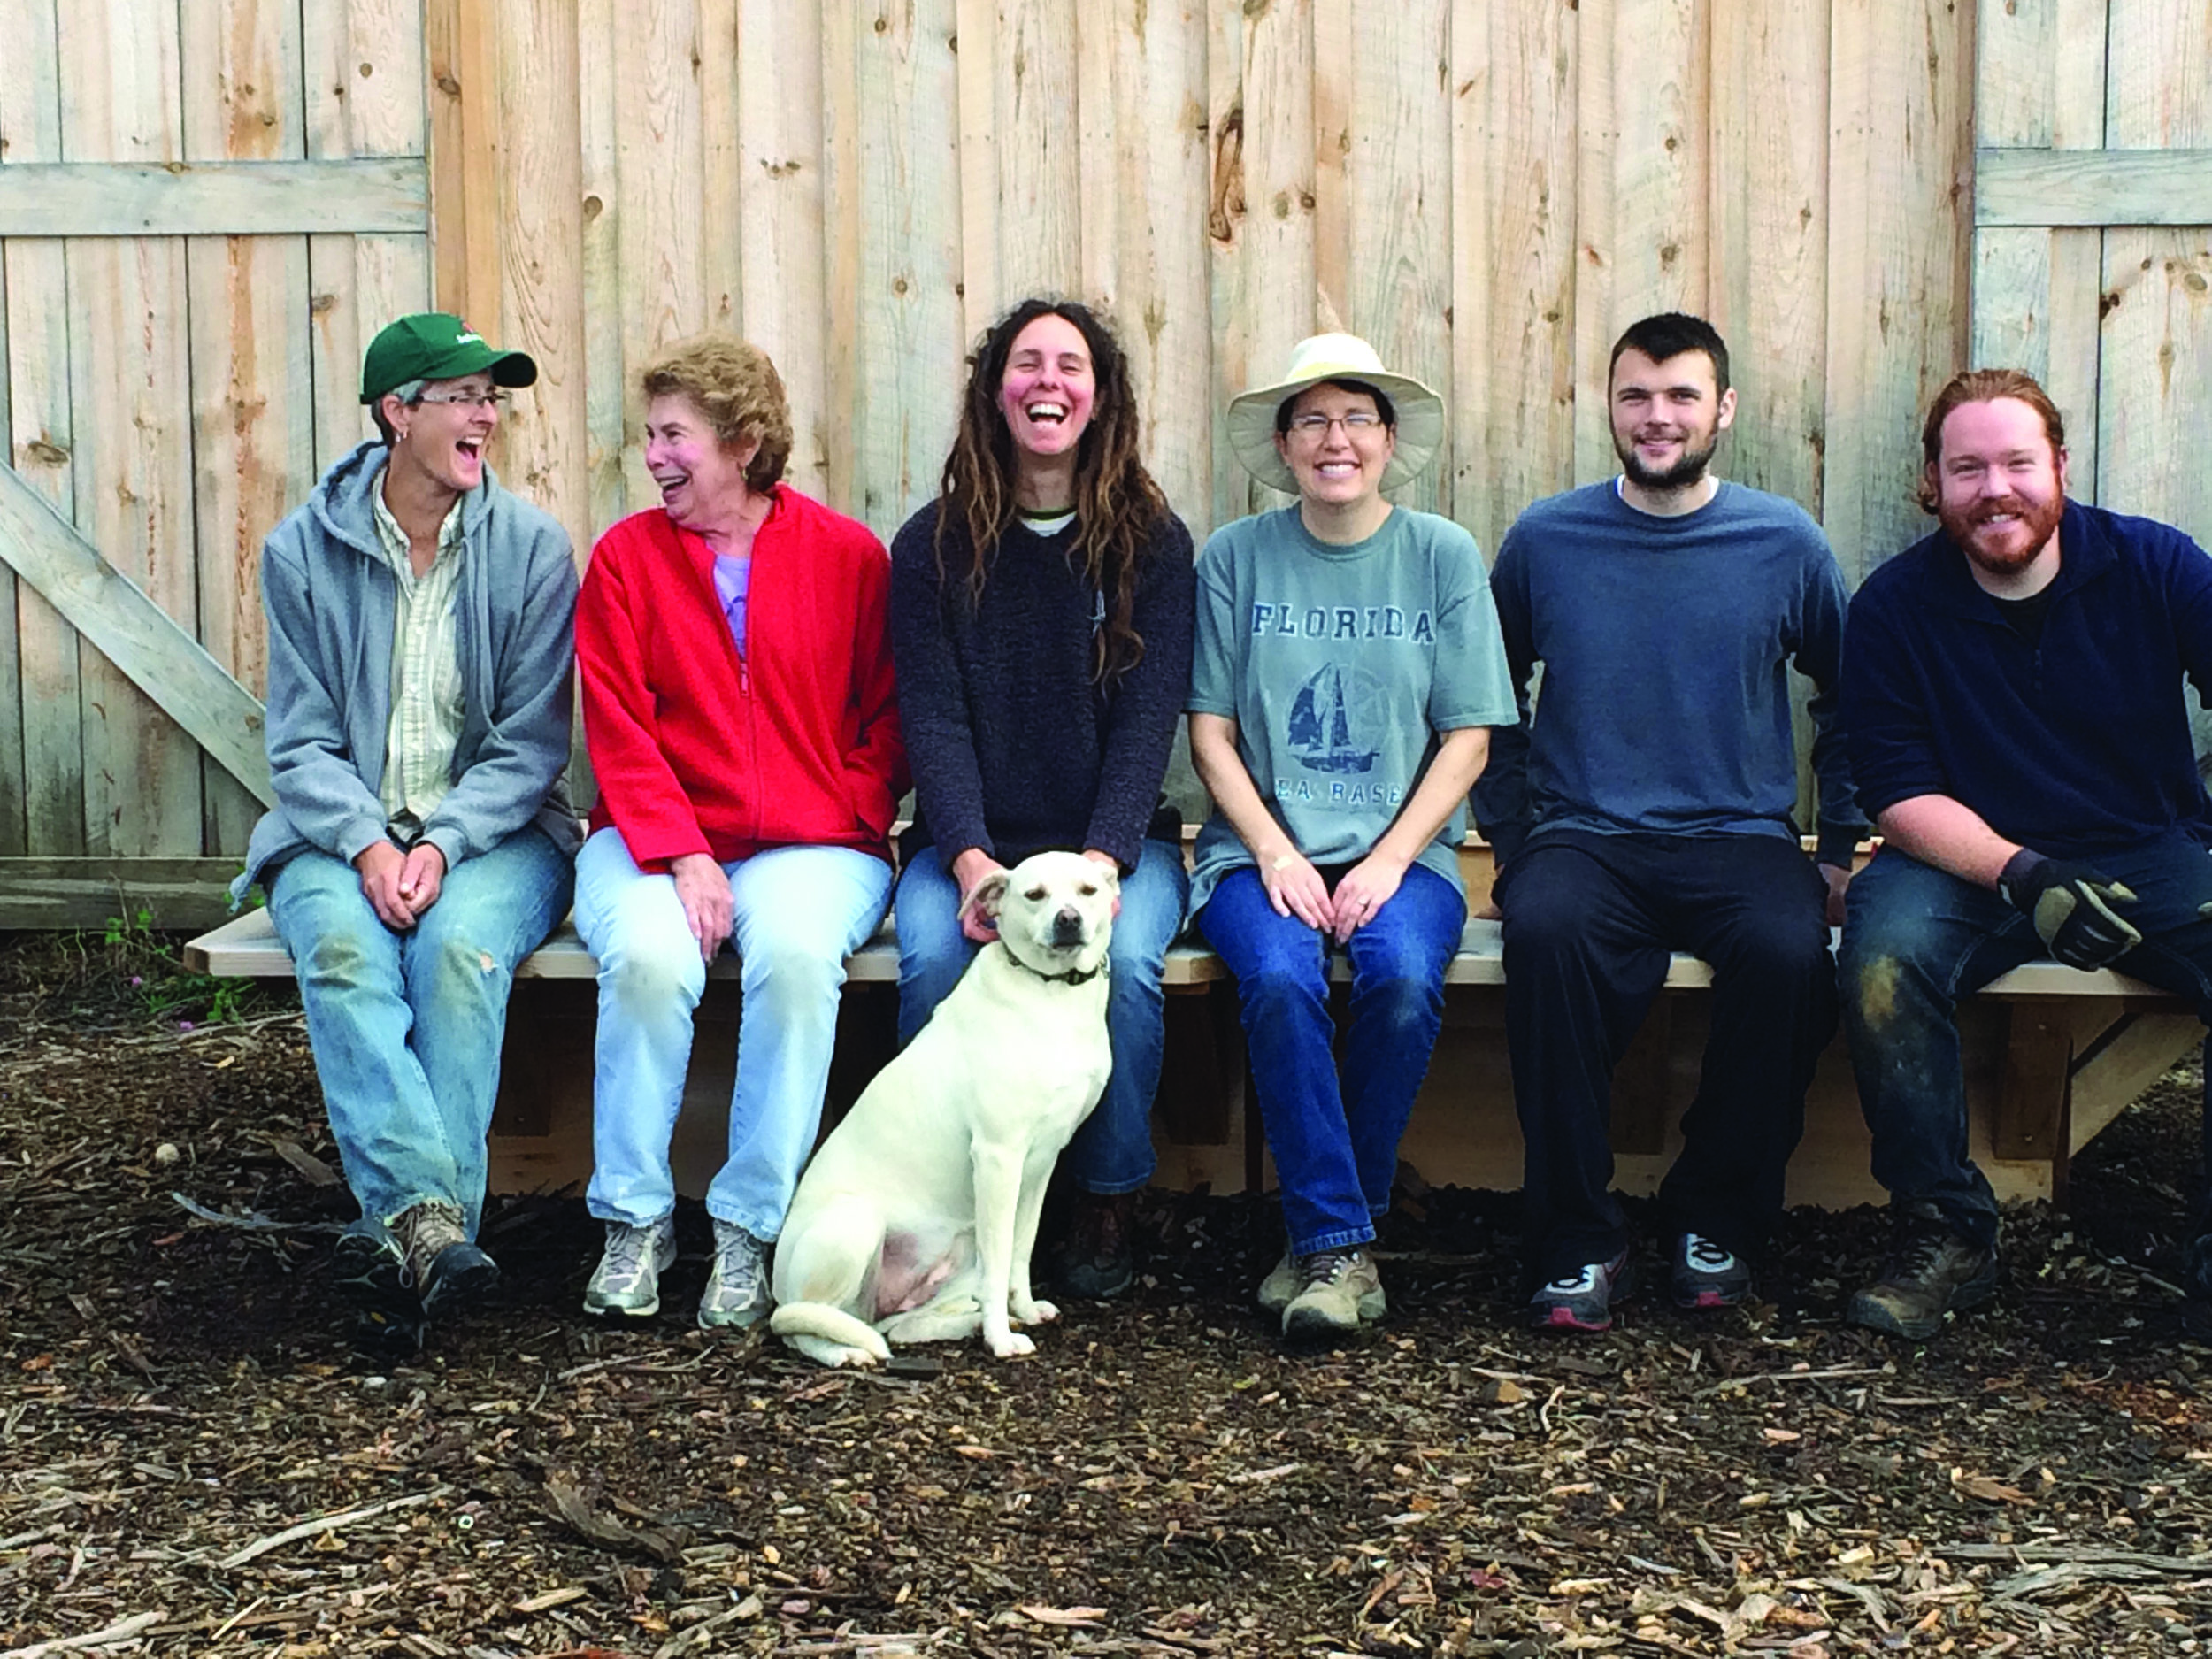 From left to right - Joannée (staff), Linda (working share), Beth (staff), Heidi (working share), Tim (staff) and Jake (staff), and we can't forget the farm dog, Roxy (she's staff too ).